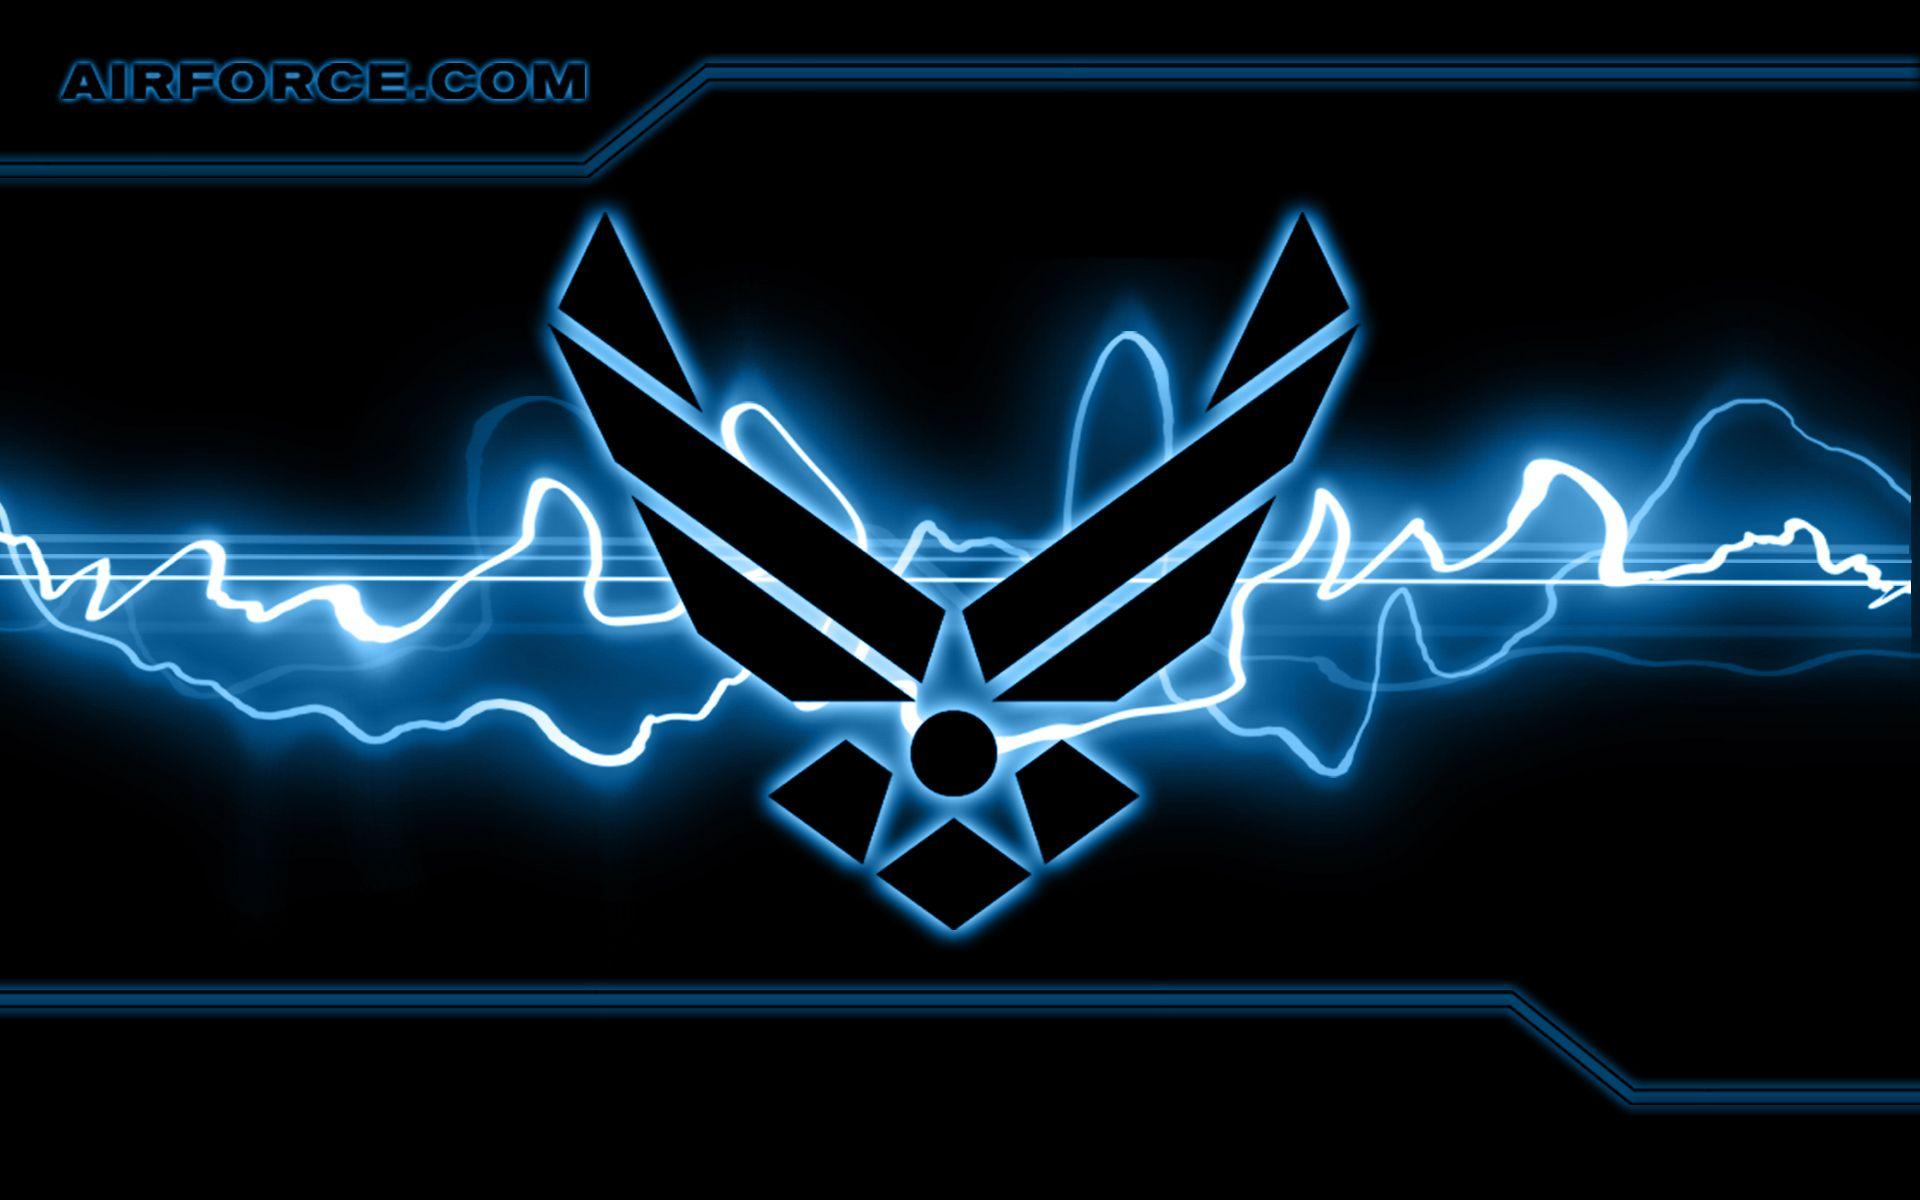 air force desktop wallpaper - photo #2